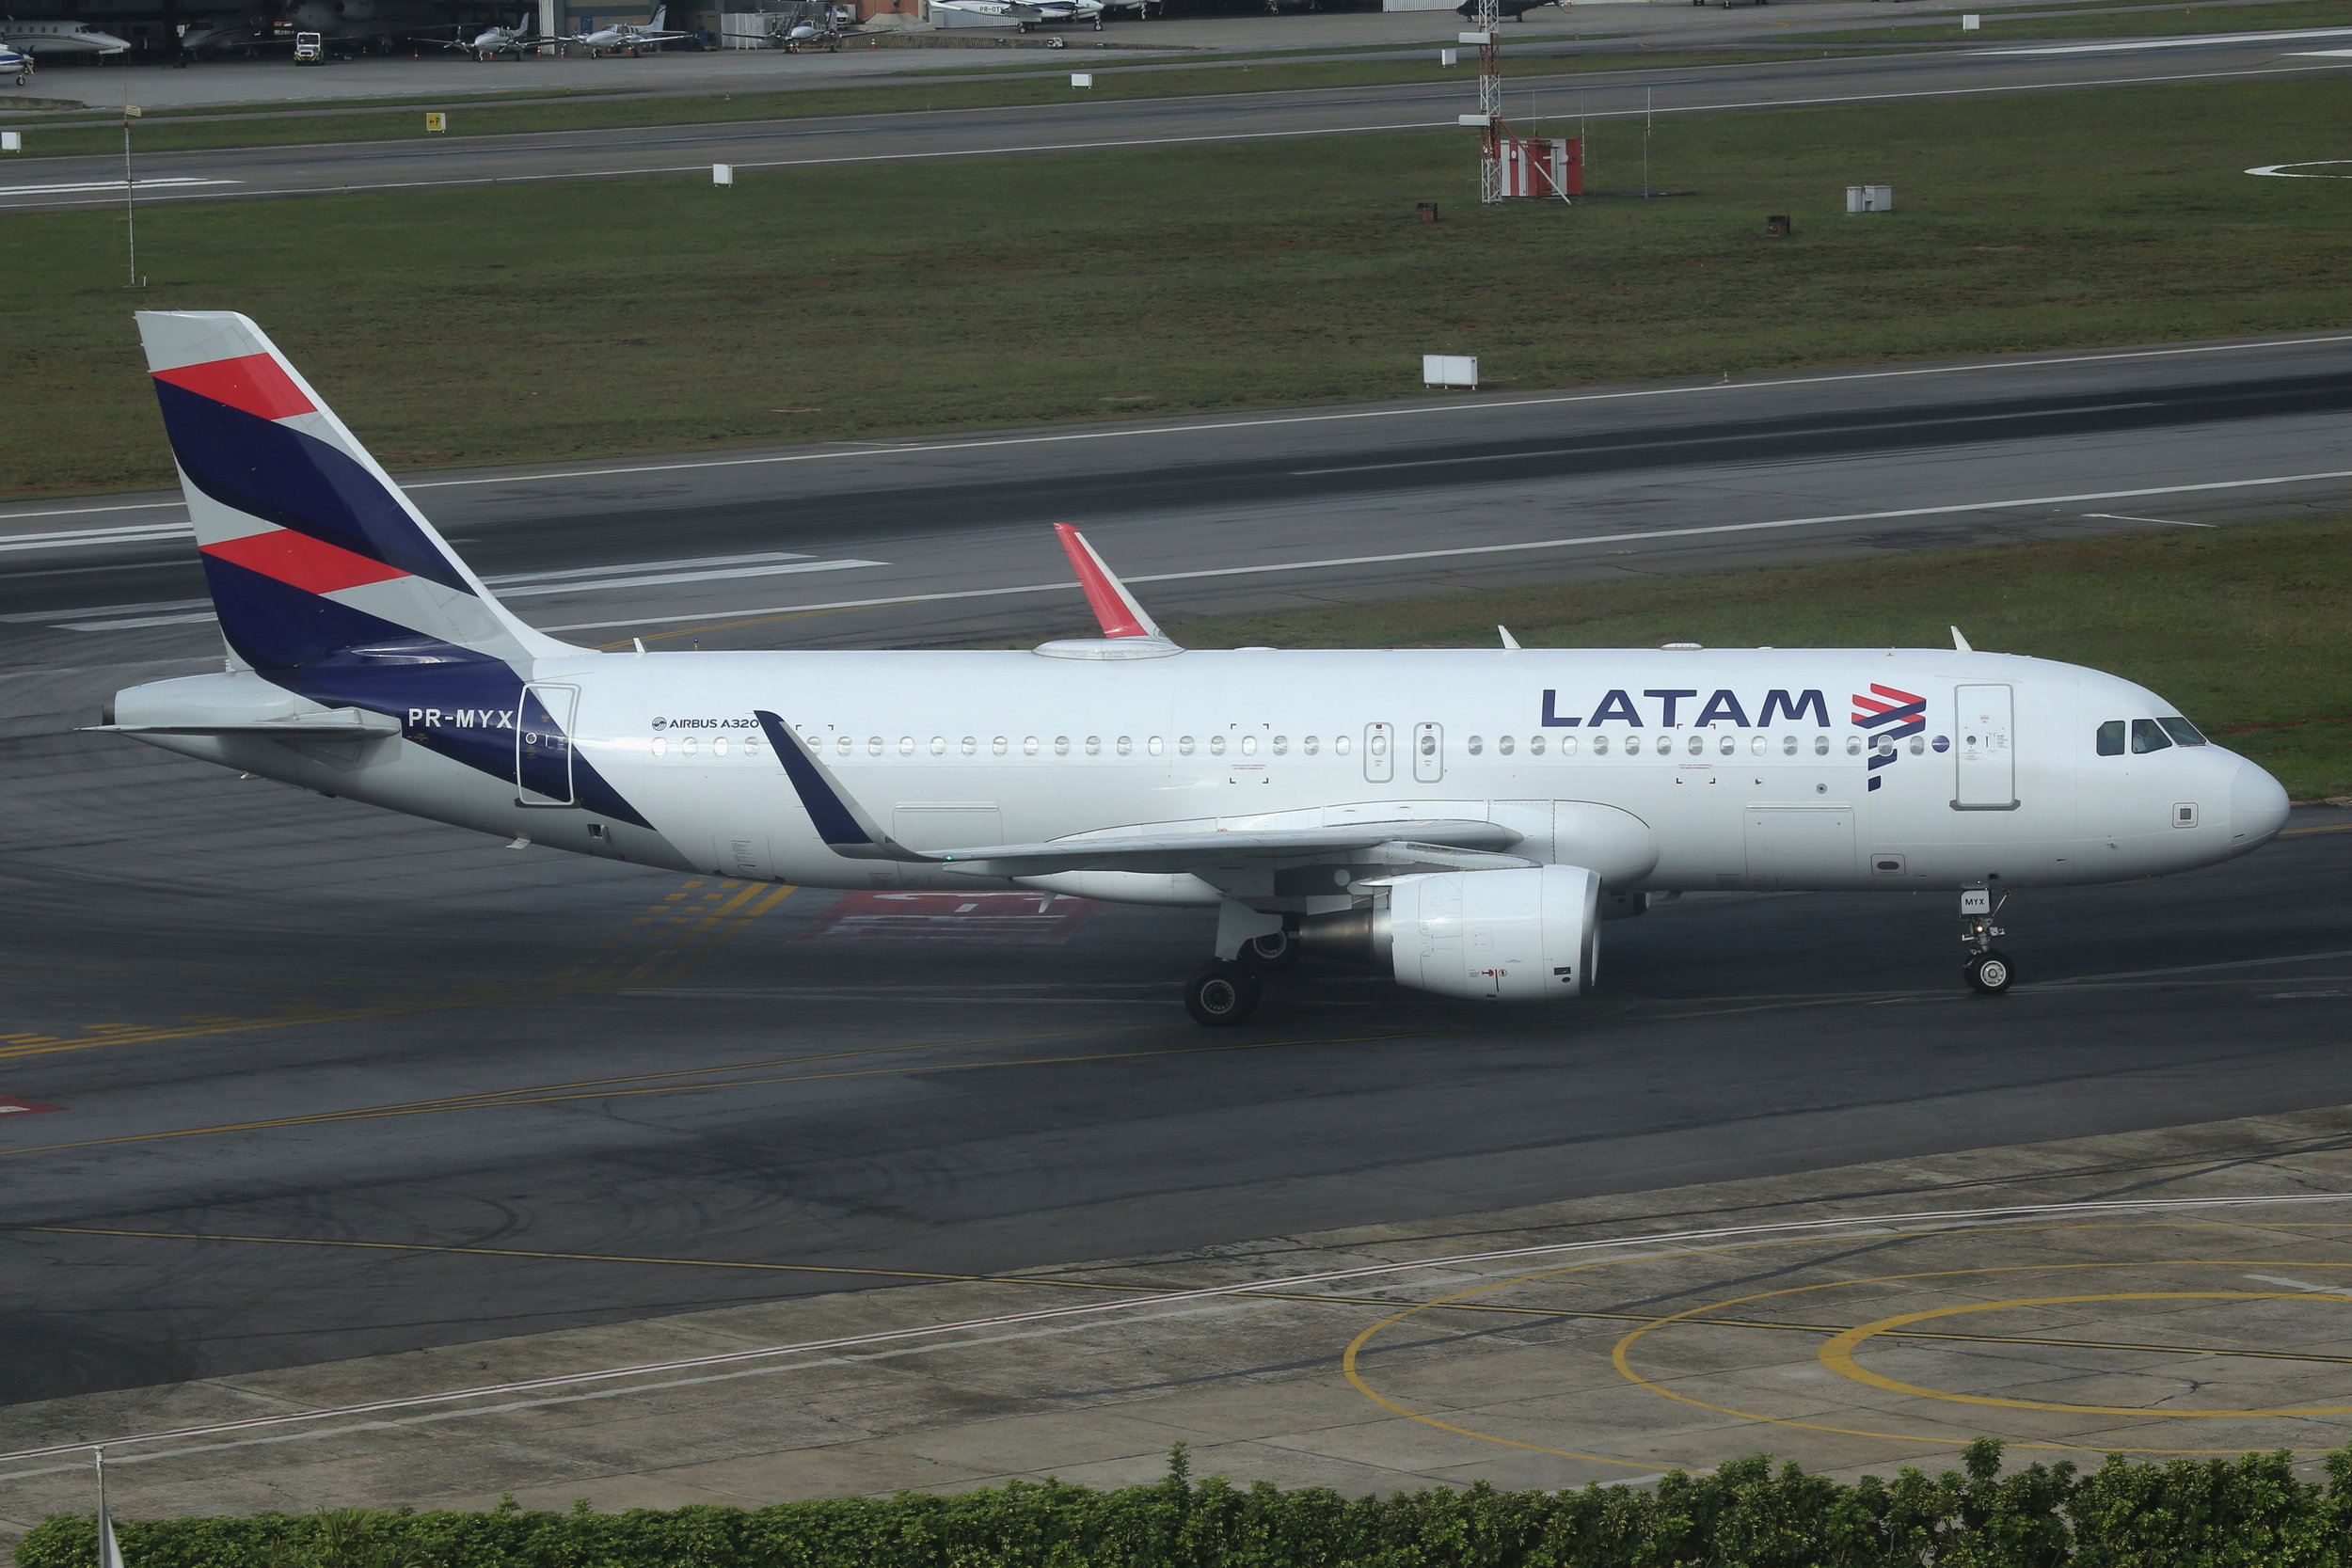 PR-MYX LATAM A320 taken from the Slaveiro Slim hotel at Sao Paulo Congonhas Airport 28th April 2019 by John Wood